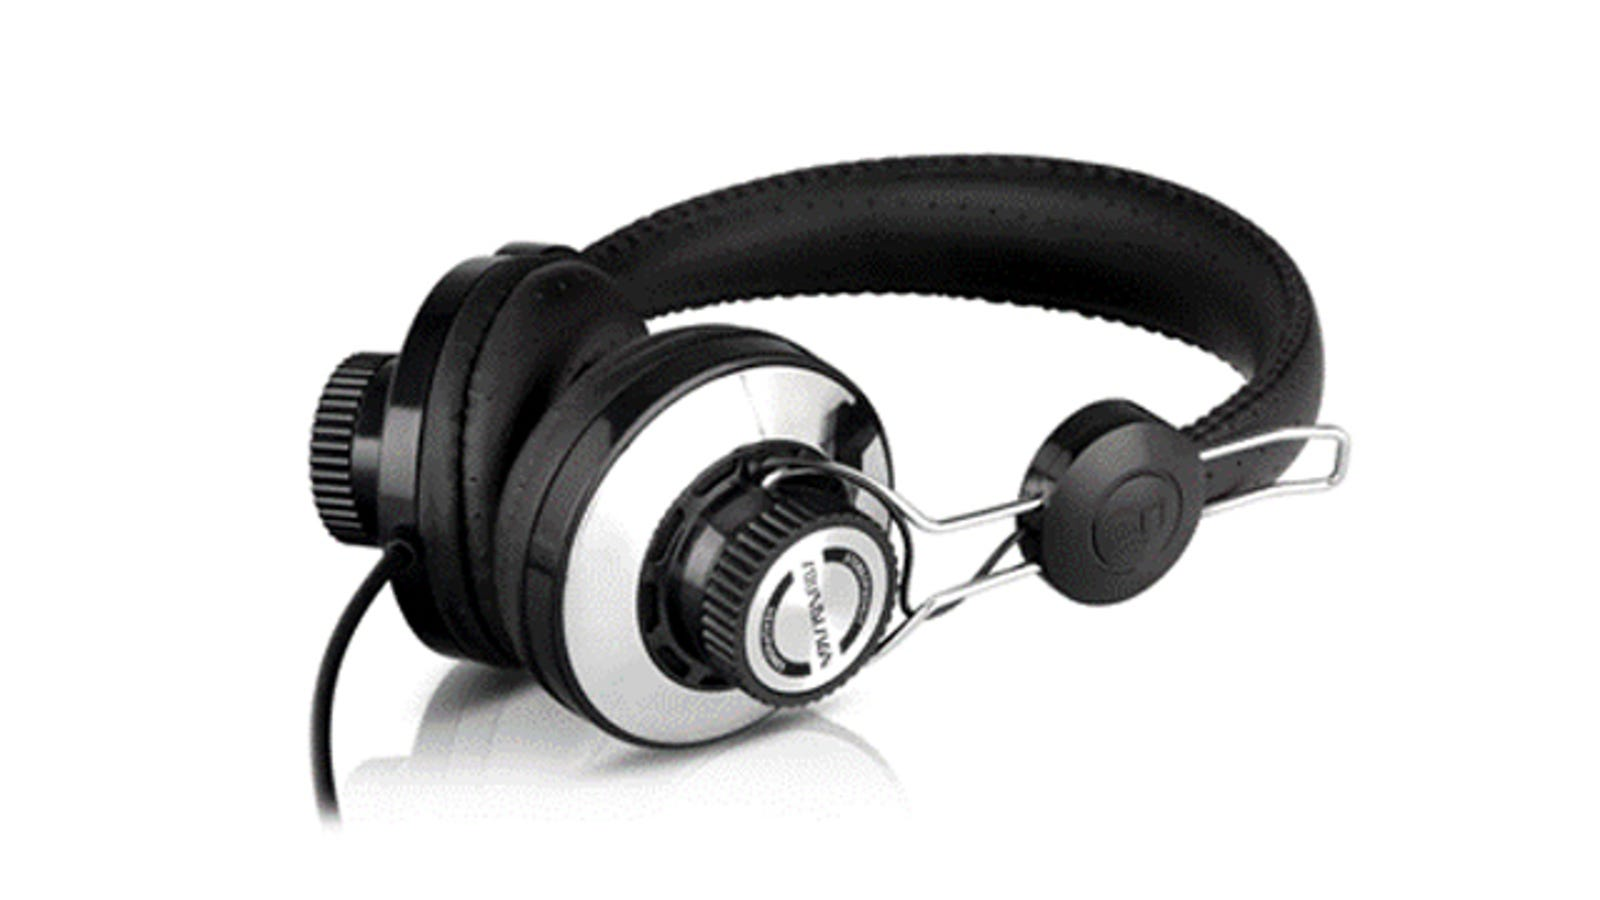 jbl headphones wireless with microphone